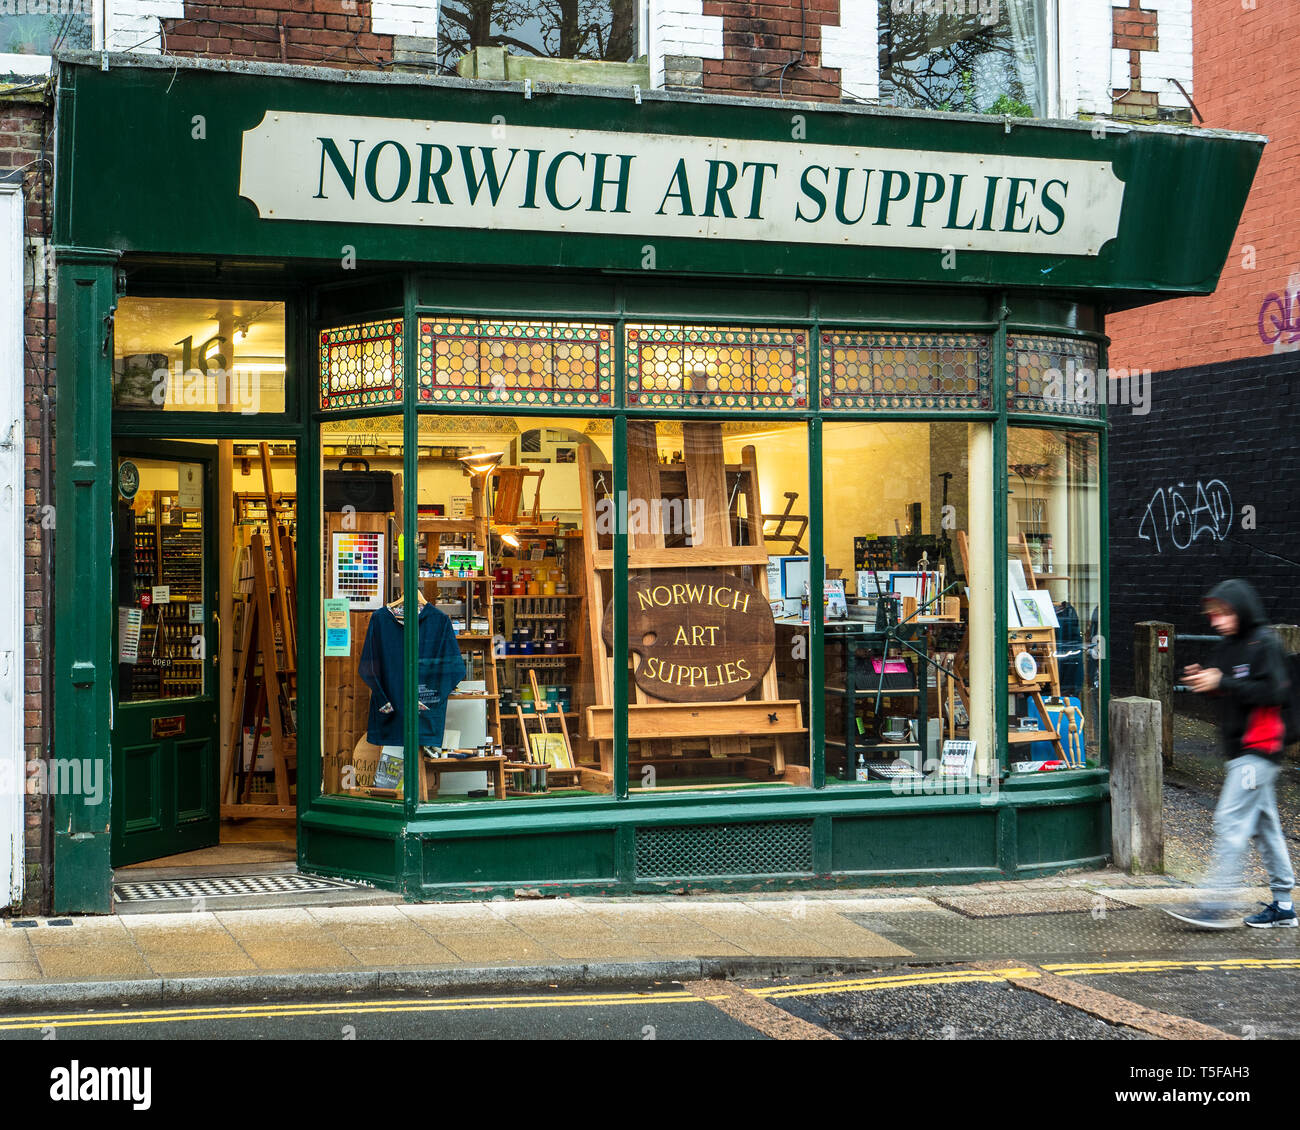 Norwich Art Supplies Shop in central Norwich UK - Artist Equipment Store - Stock Image